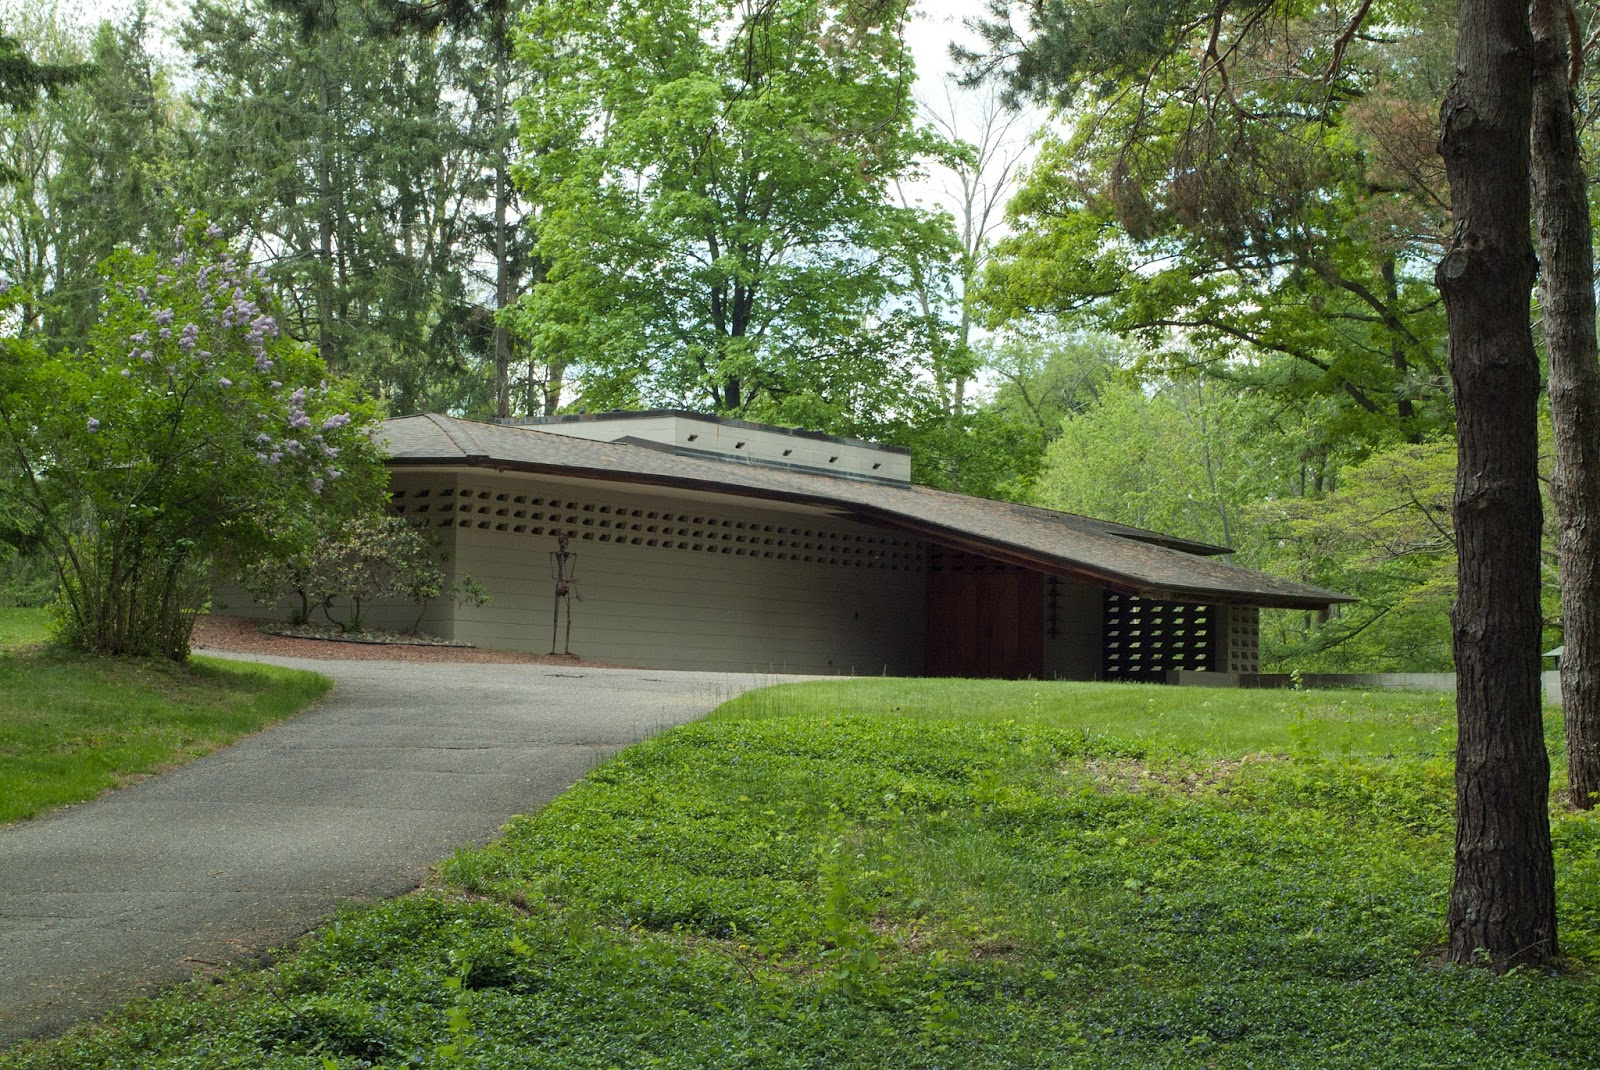 Frank lloyd wright home tours in michigan homemade ftempo for Frank lloyd wright house piani gratuiti